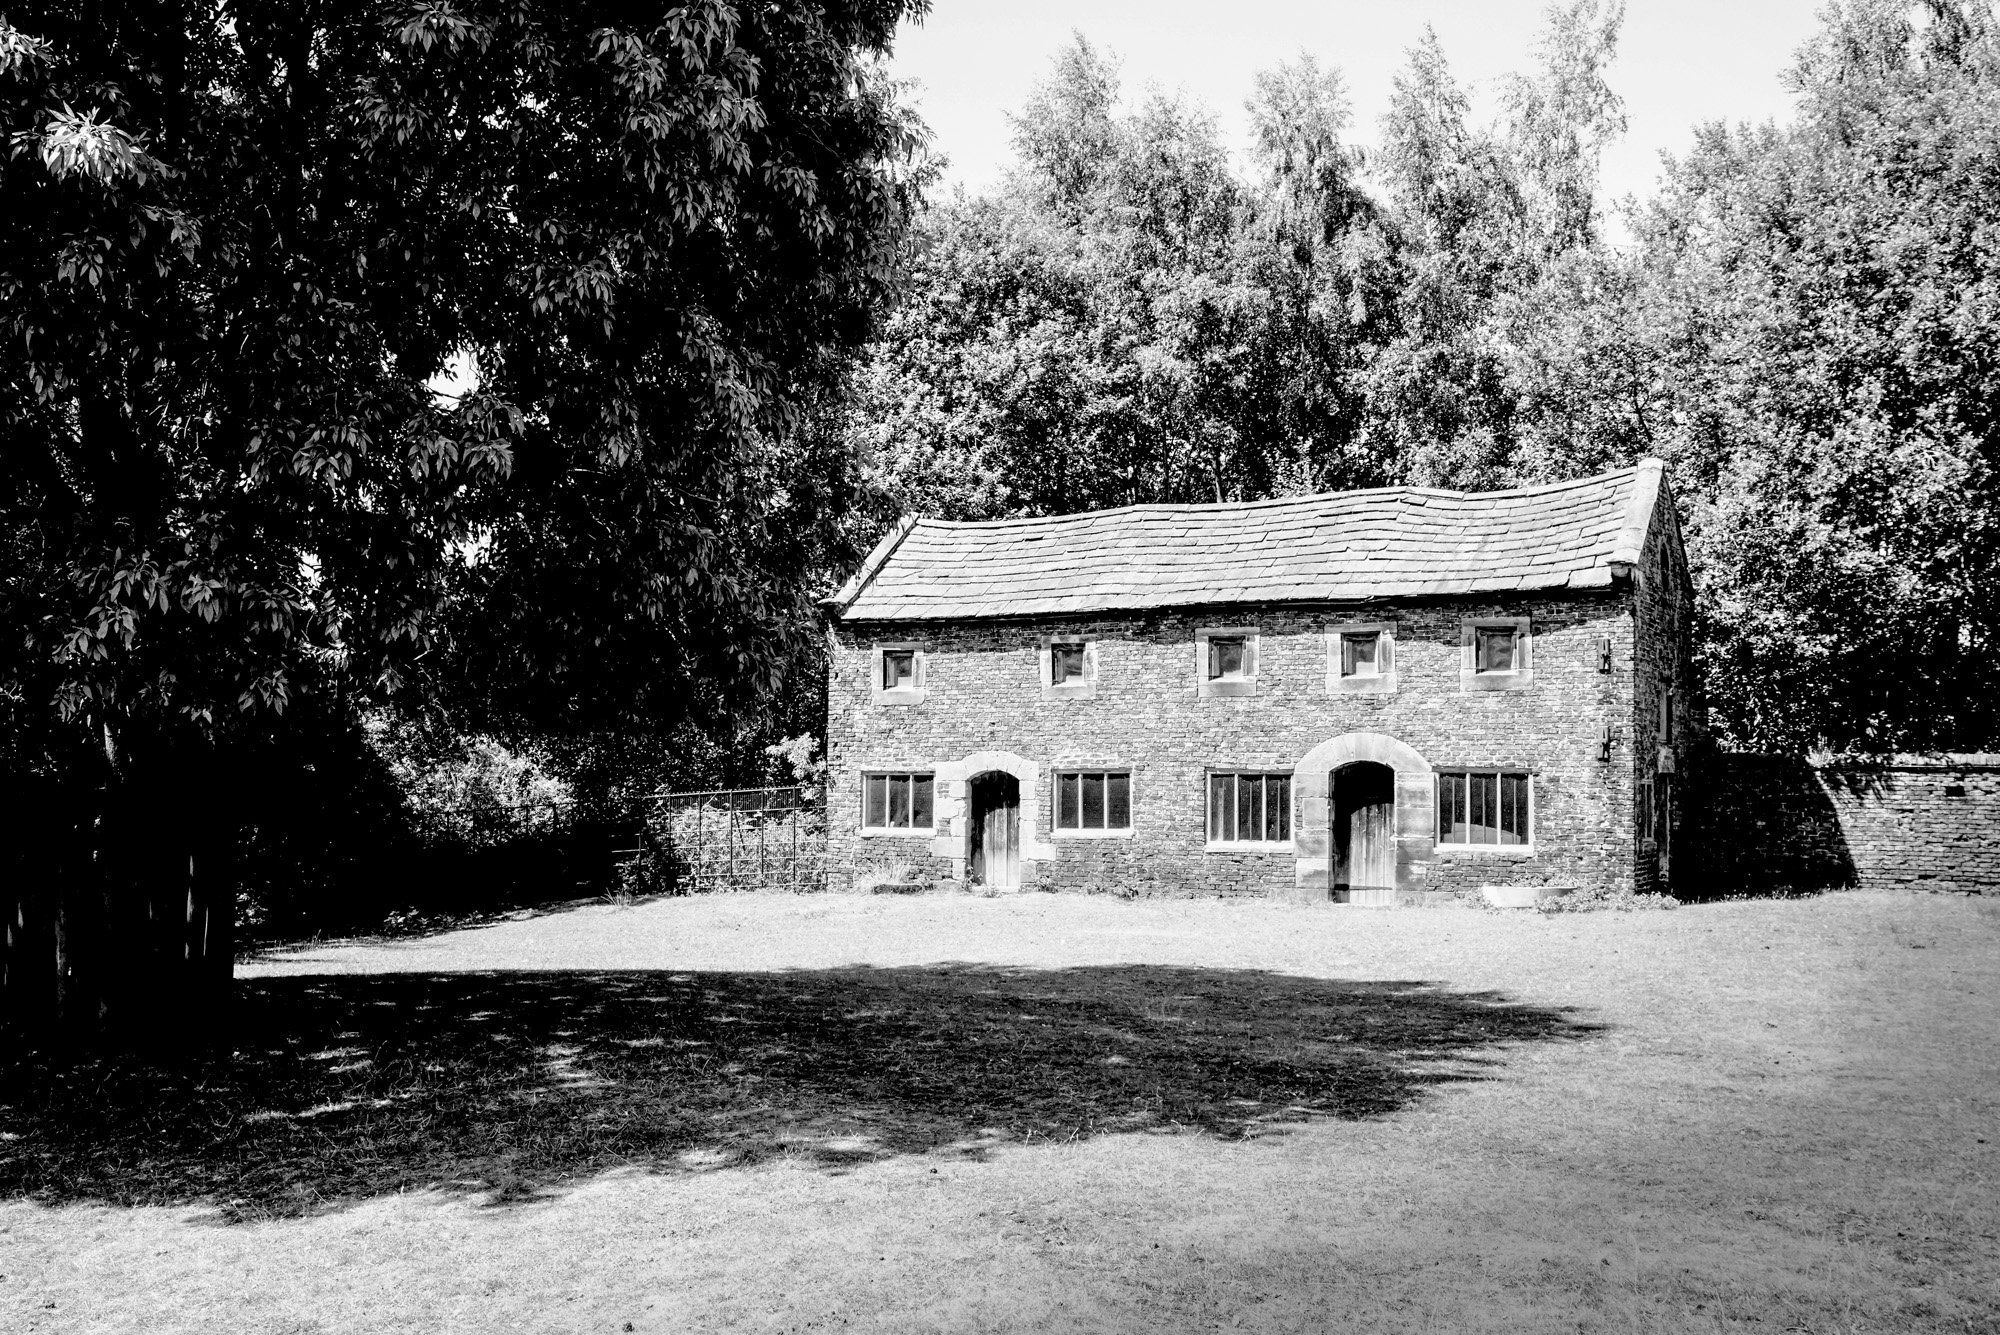 Rustic building in Cheshire